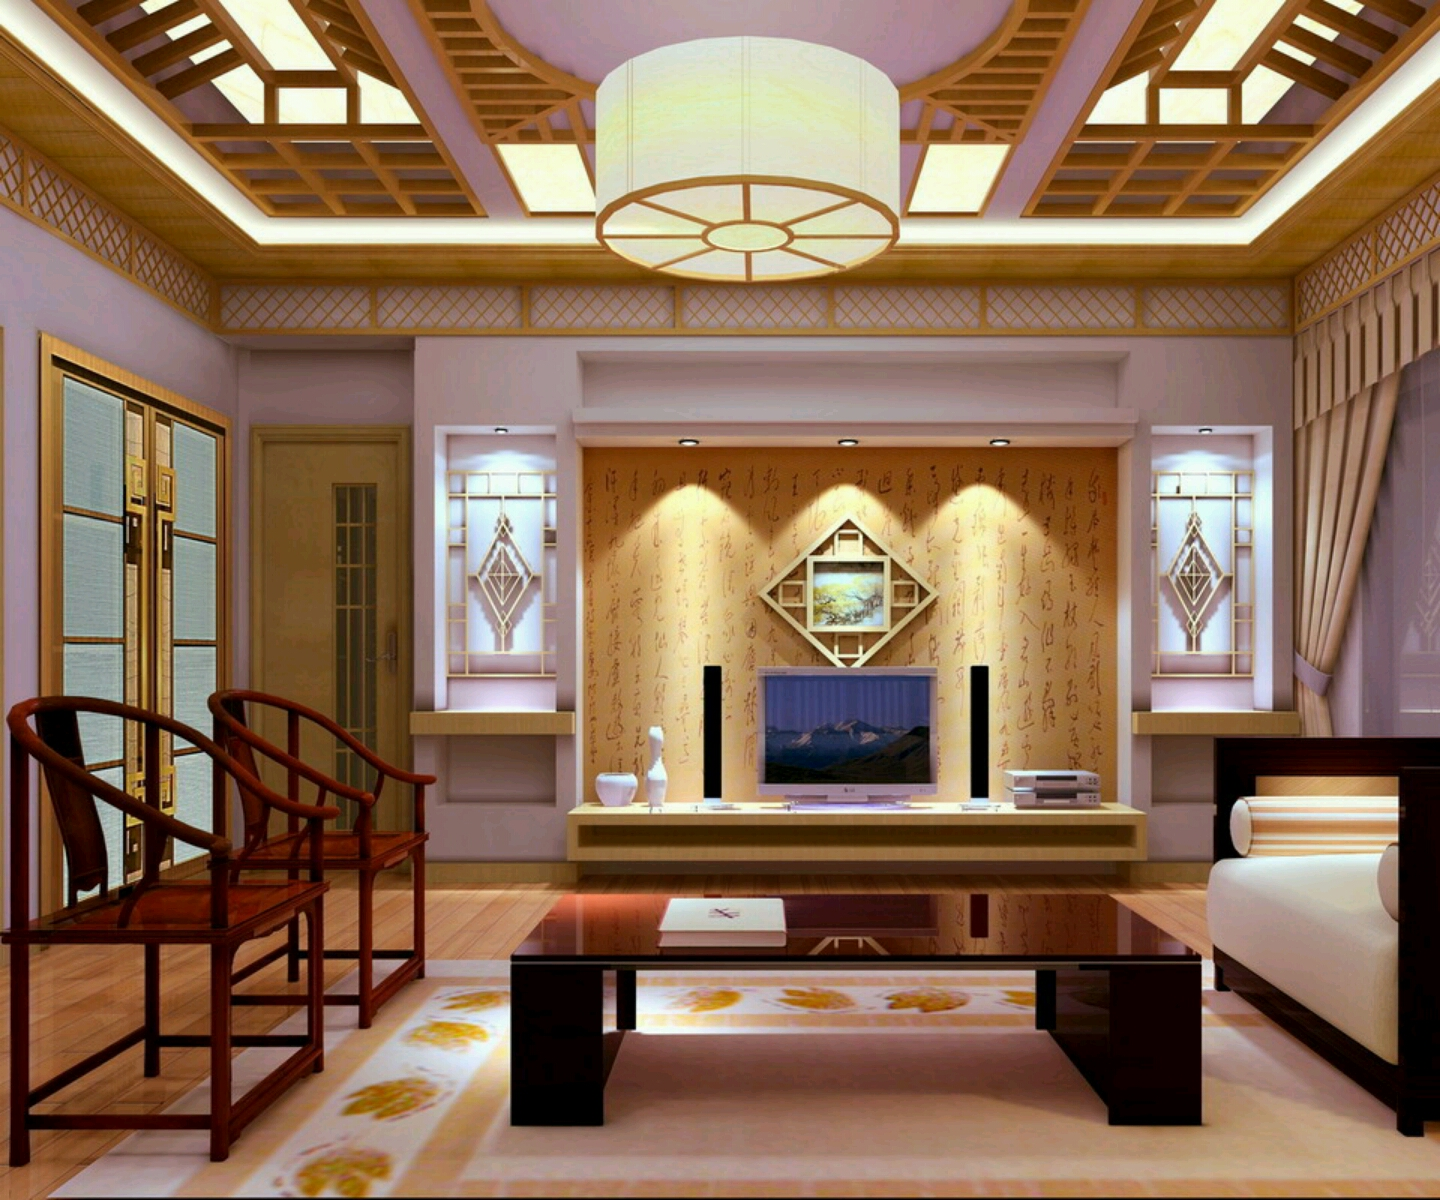 New home designs latest homes interior designs studyrooms for Home interior architecture